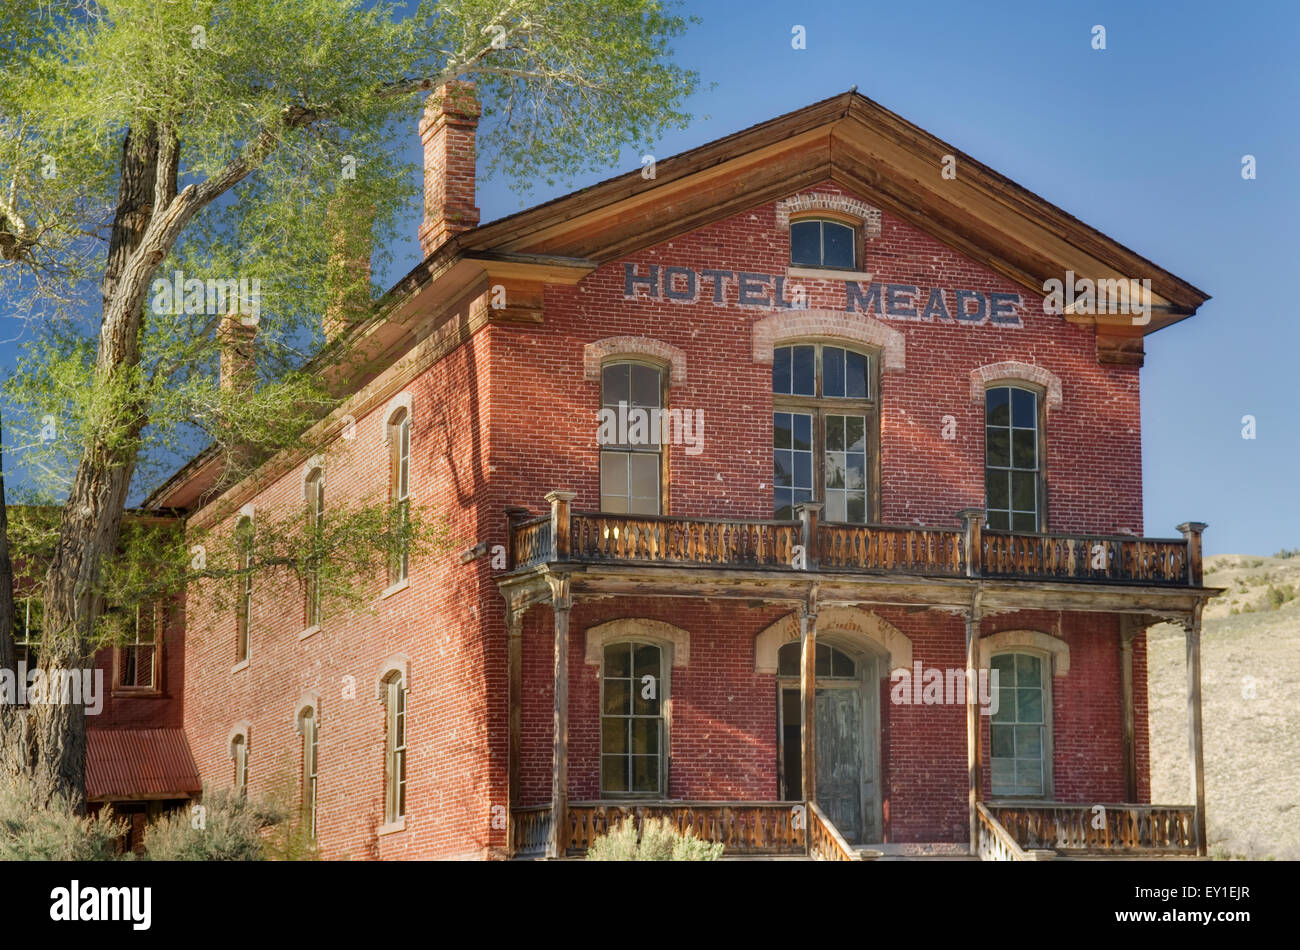 Historic Hotel Meade in Bannack State Park Montana - Stock Image